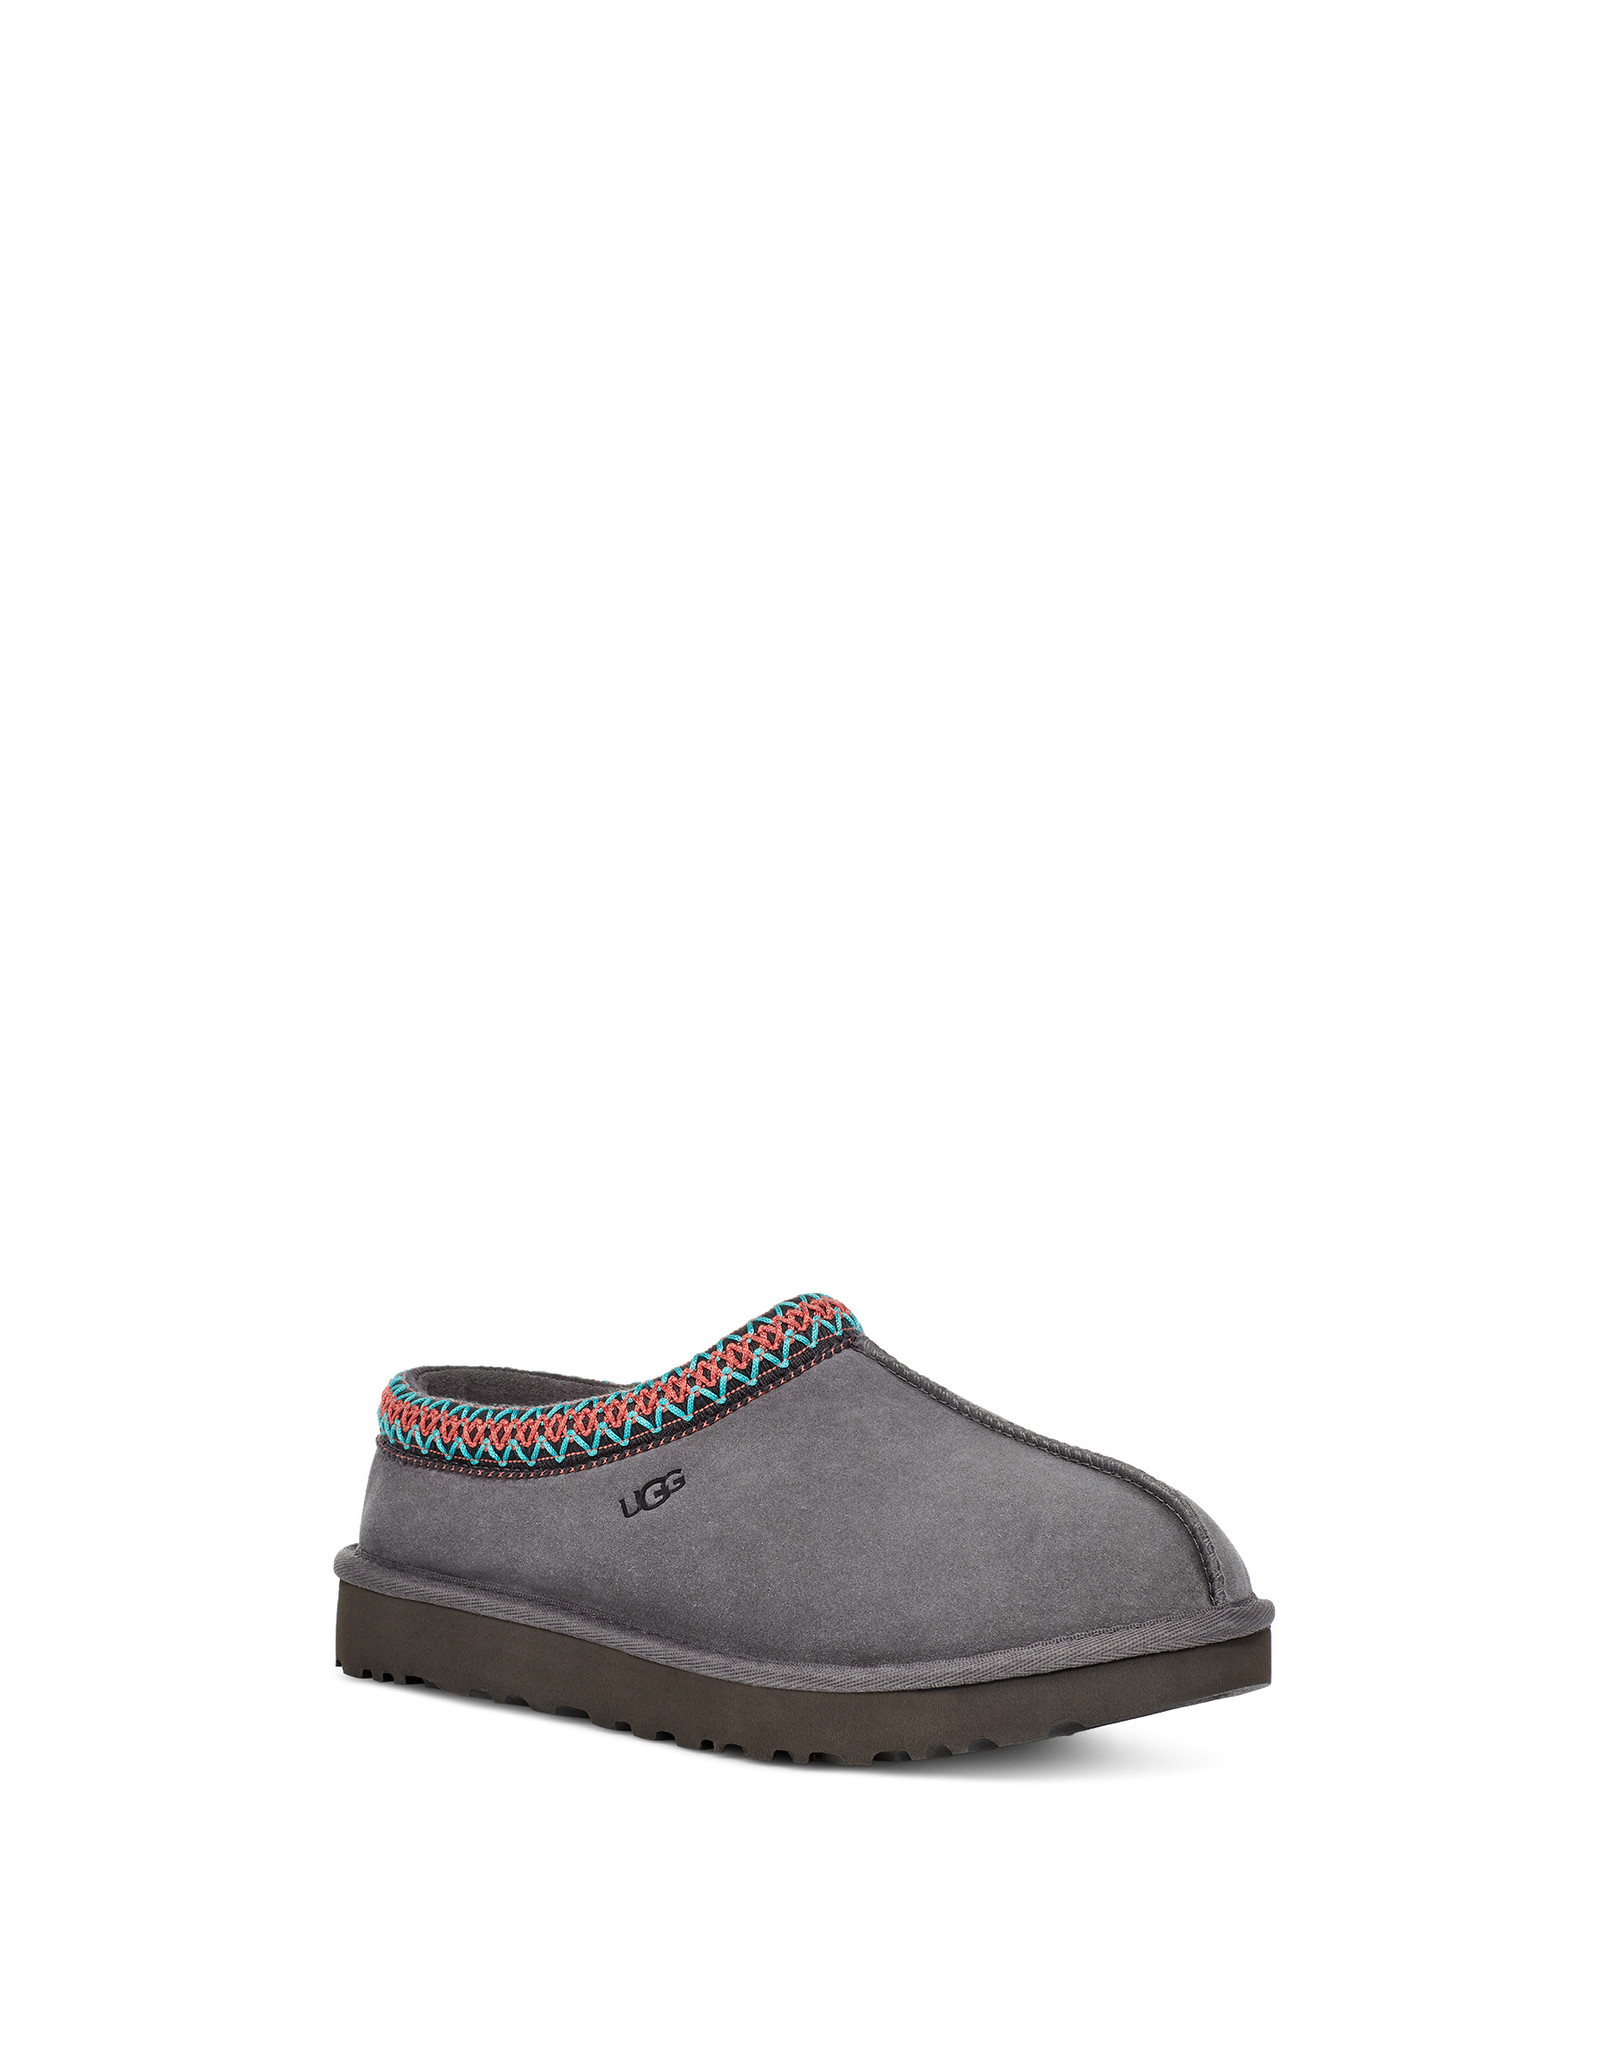 UGG WOMEN'S TASMAN-DARK GREY